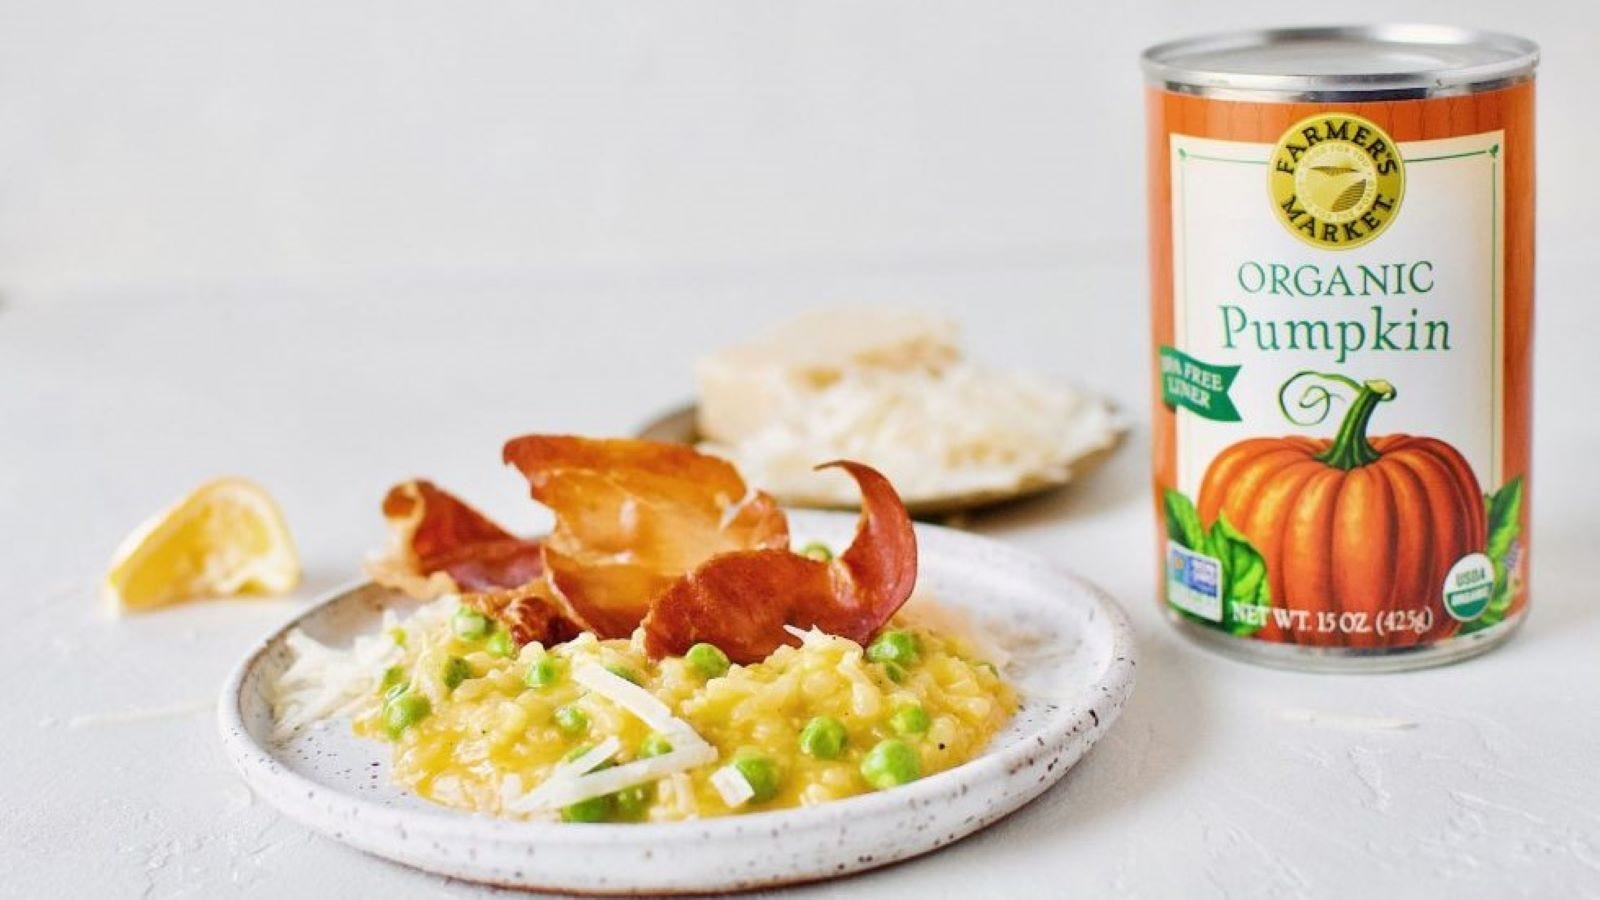 A can of Farmer's Market Organic Pumpkin next to a plate of risotto.